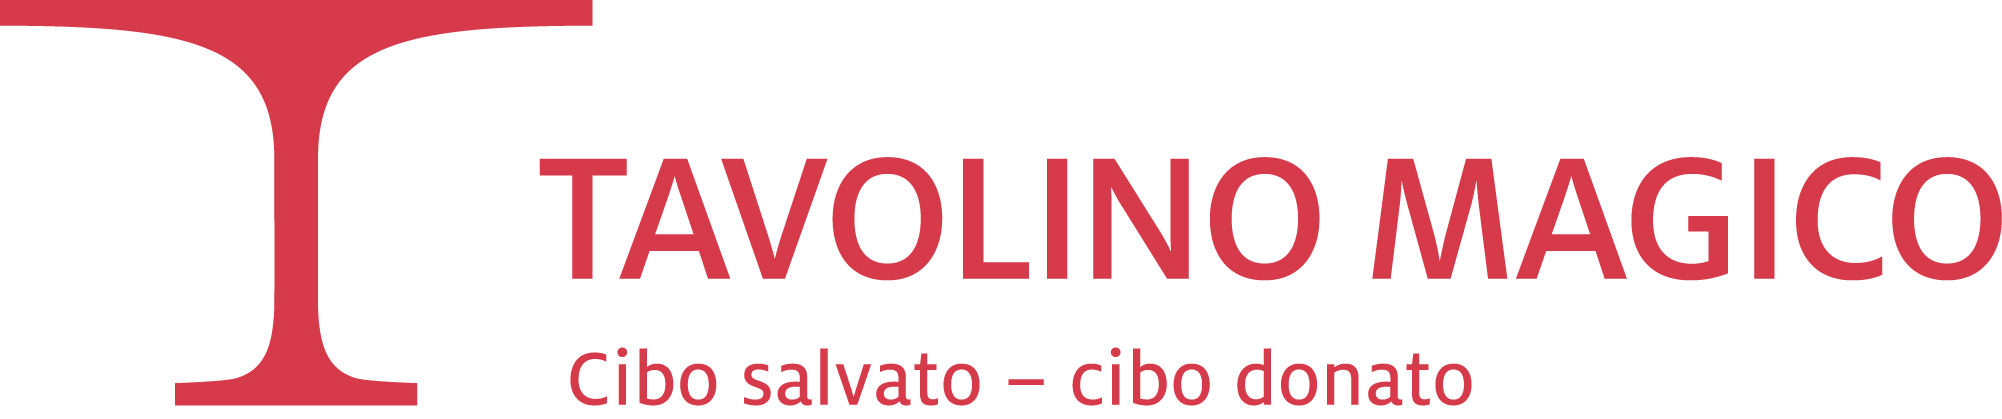 Tavolino Magico Tdd Logo It 2018